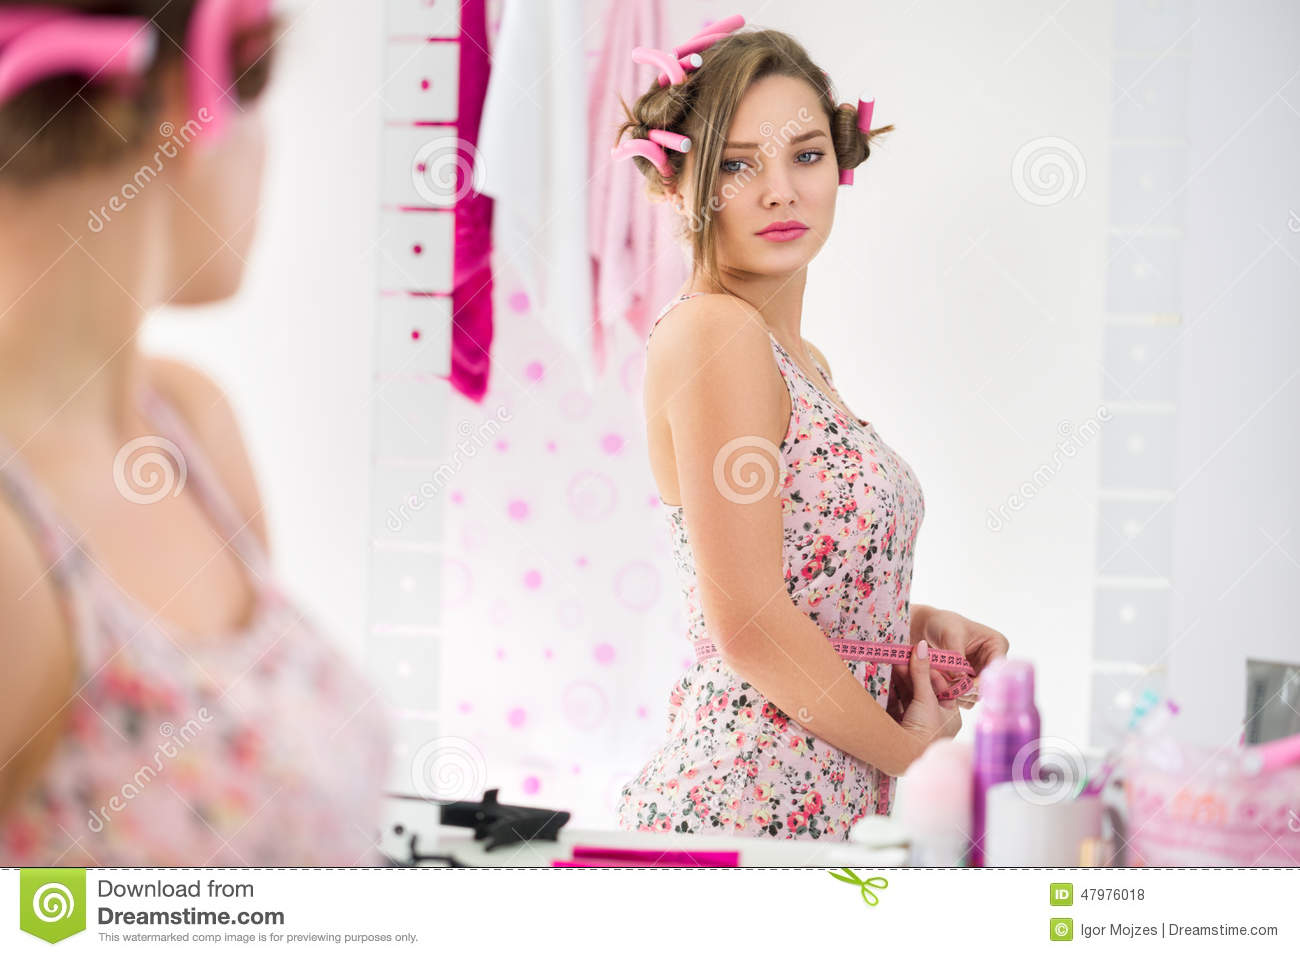 Girl In Puberty Observe Her Body Change Stock Photo